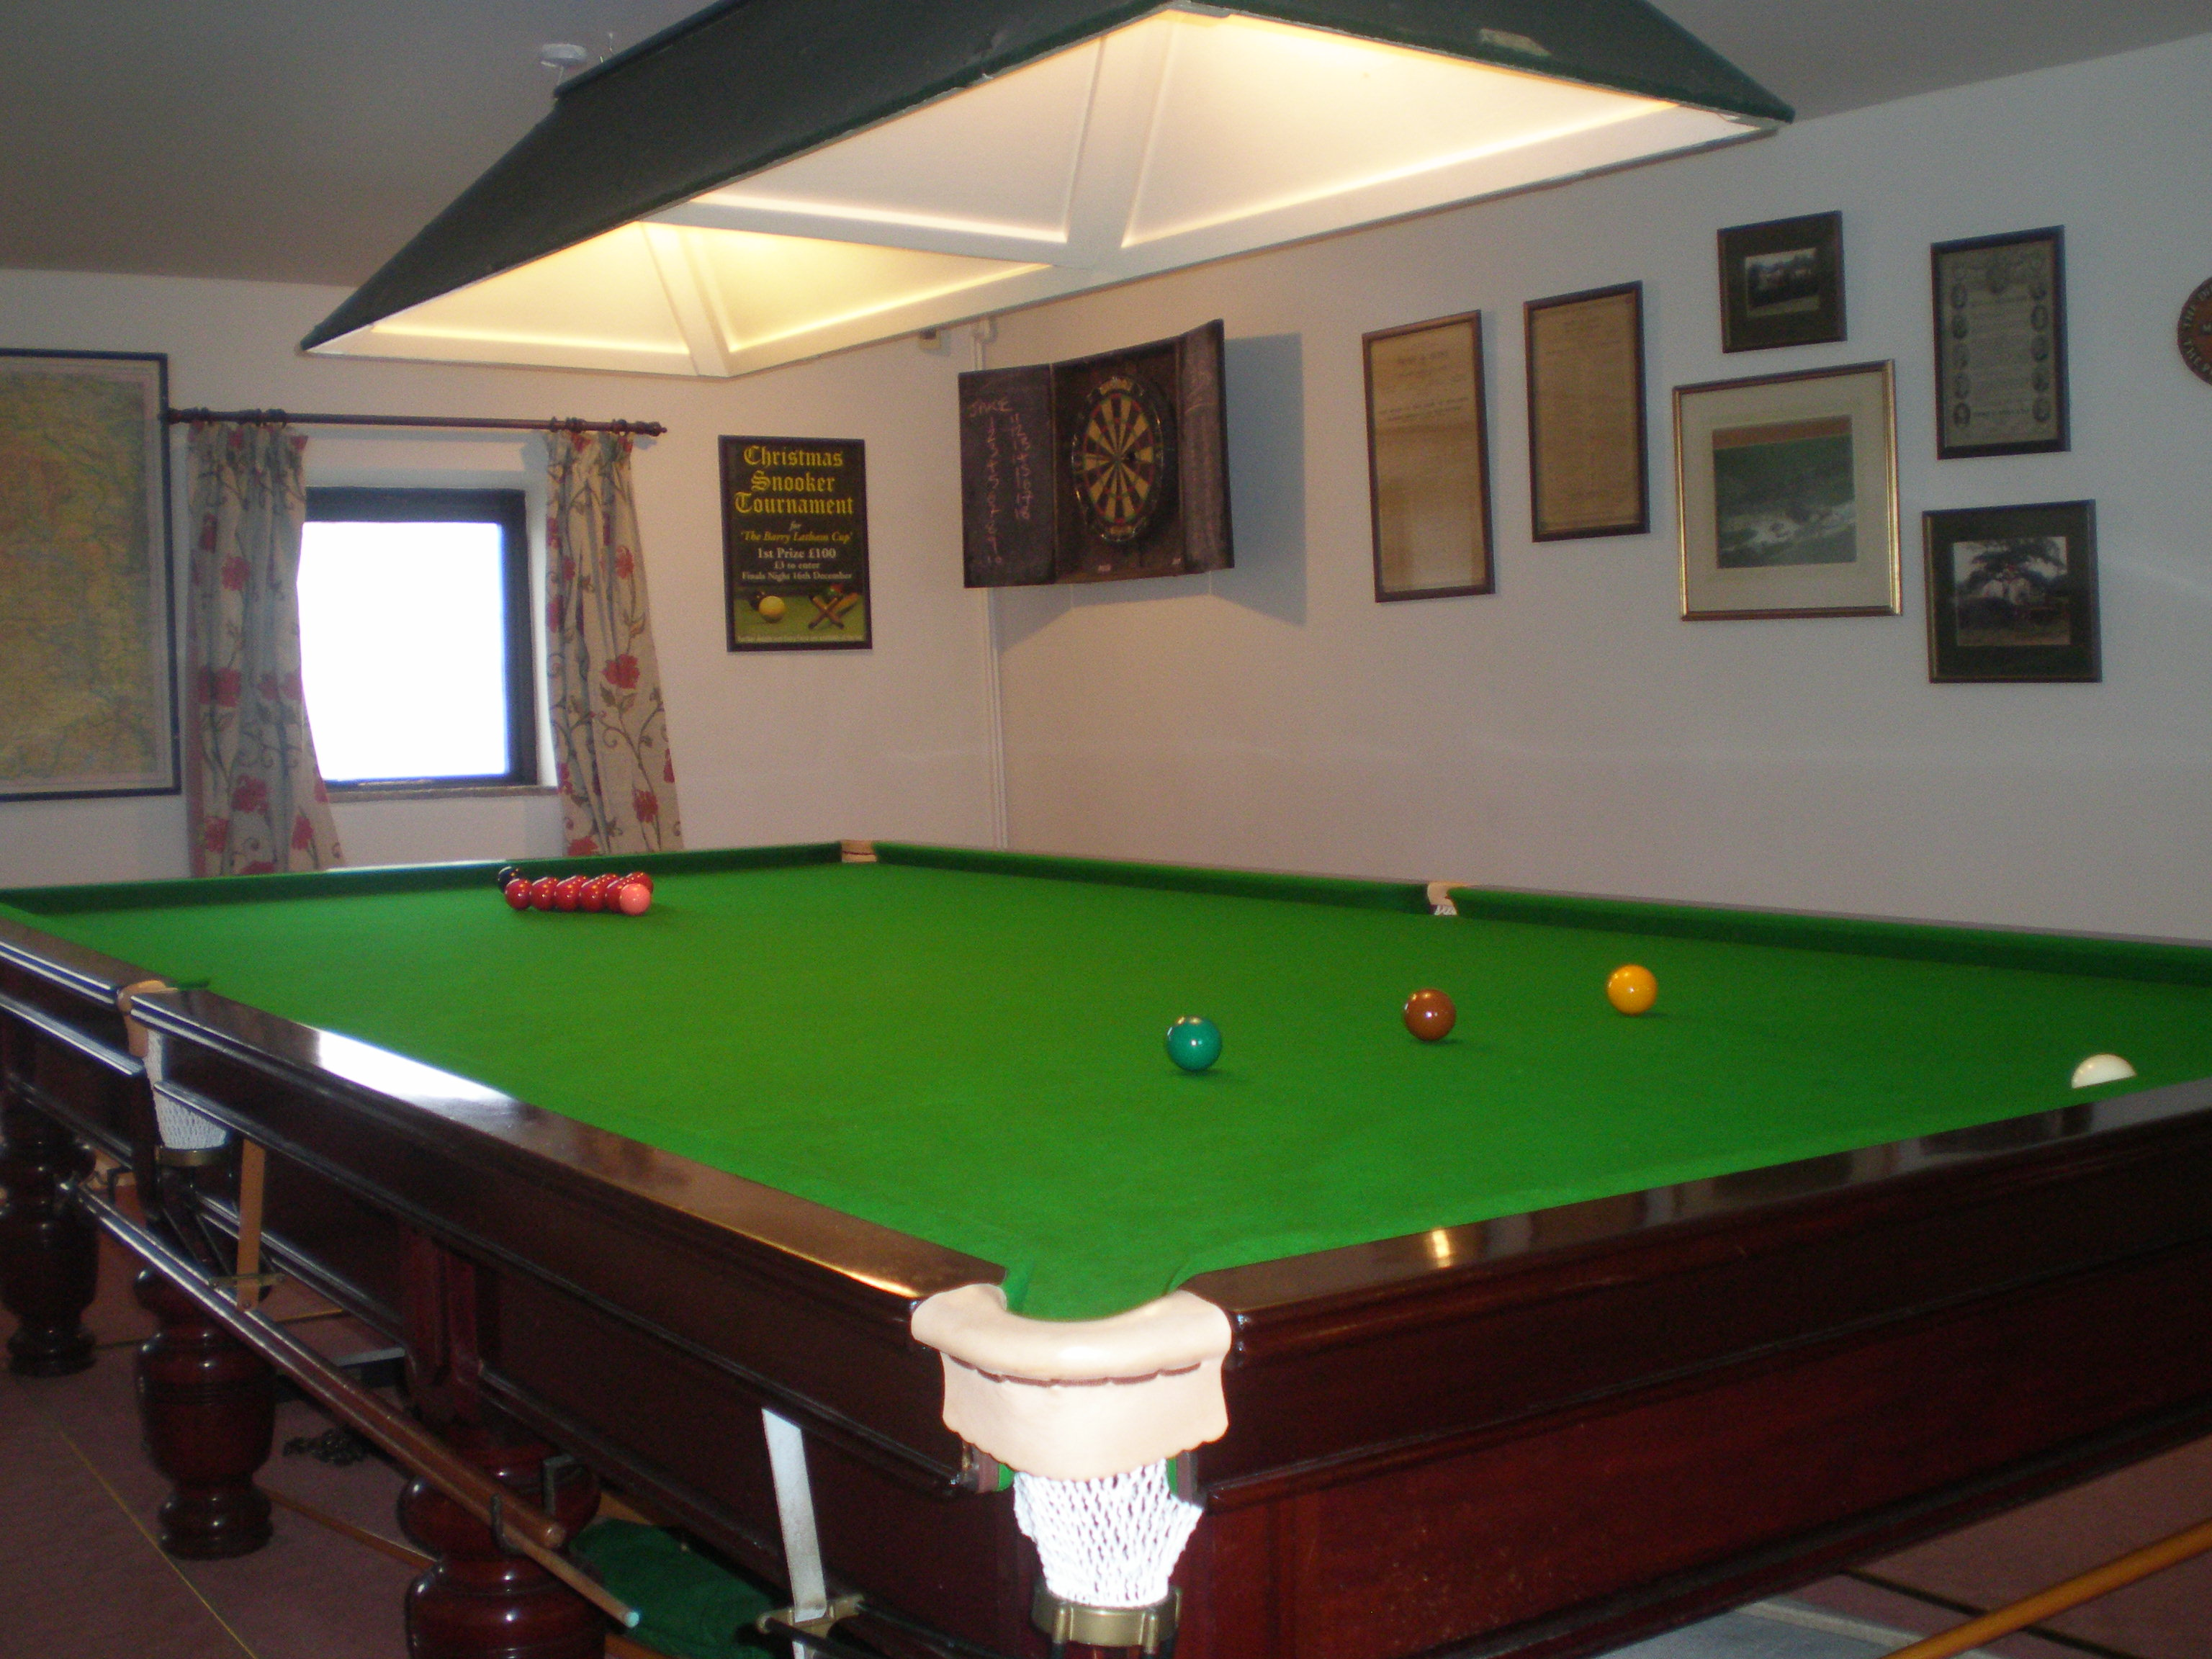 Indoor heated swimming pool billiards snooker table for Pool table house